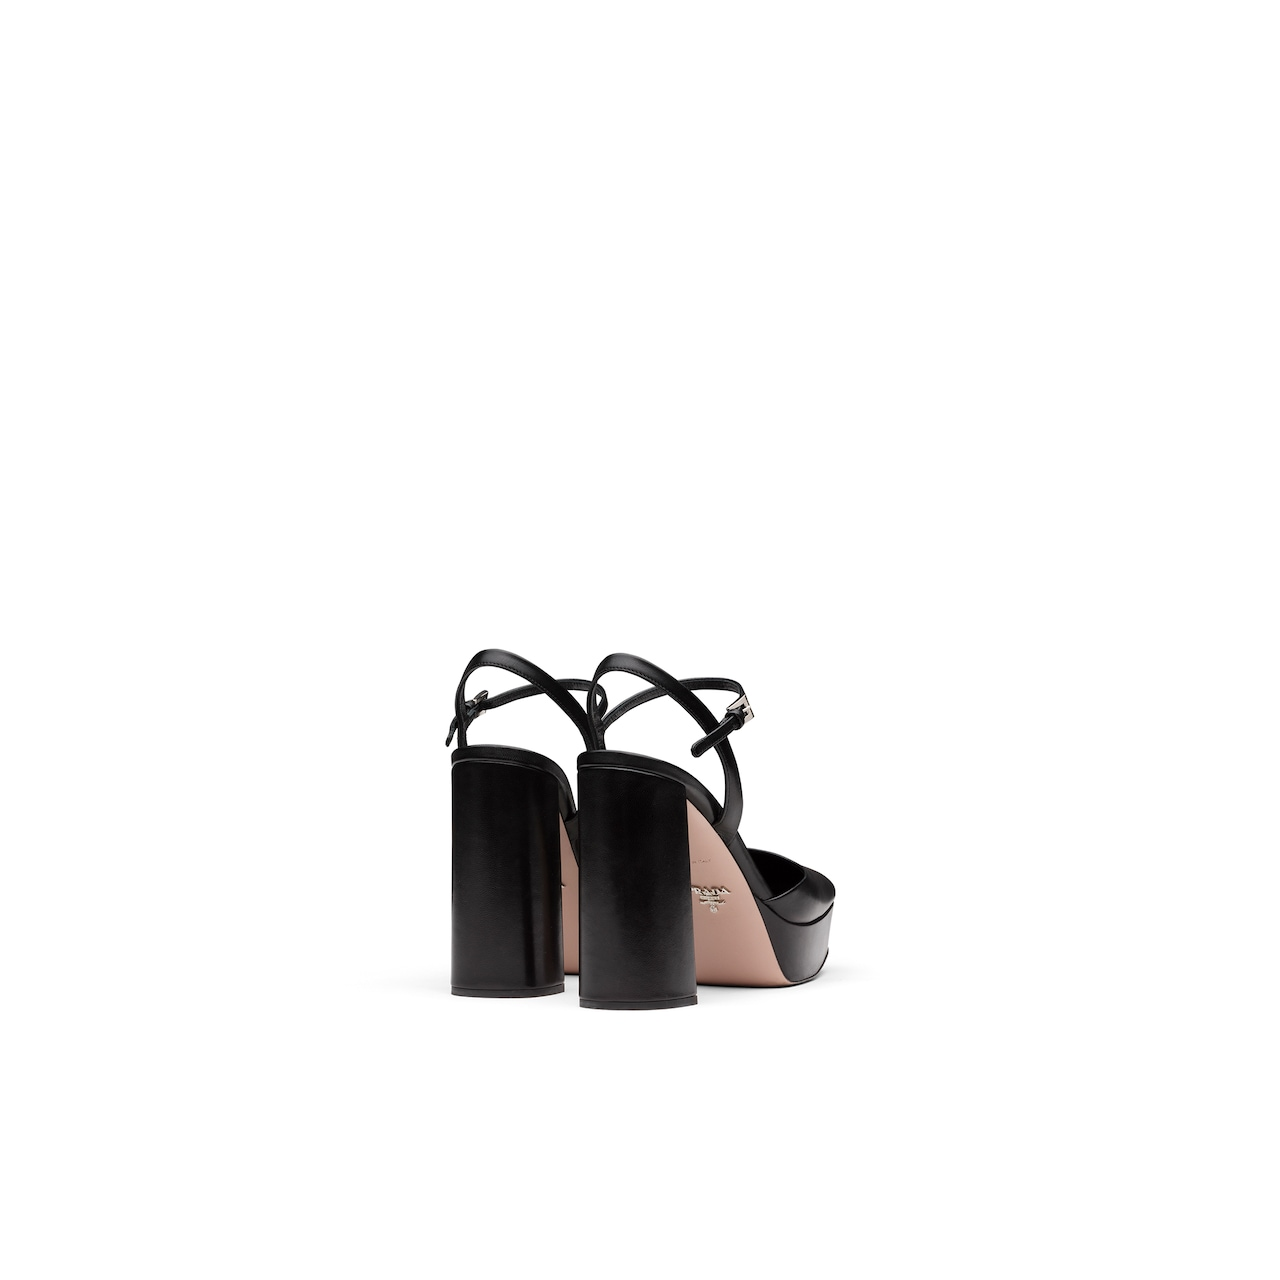 Leather square toe sandals 5